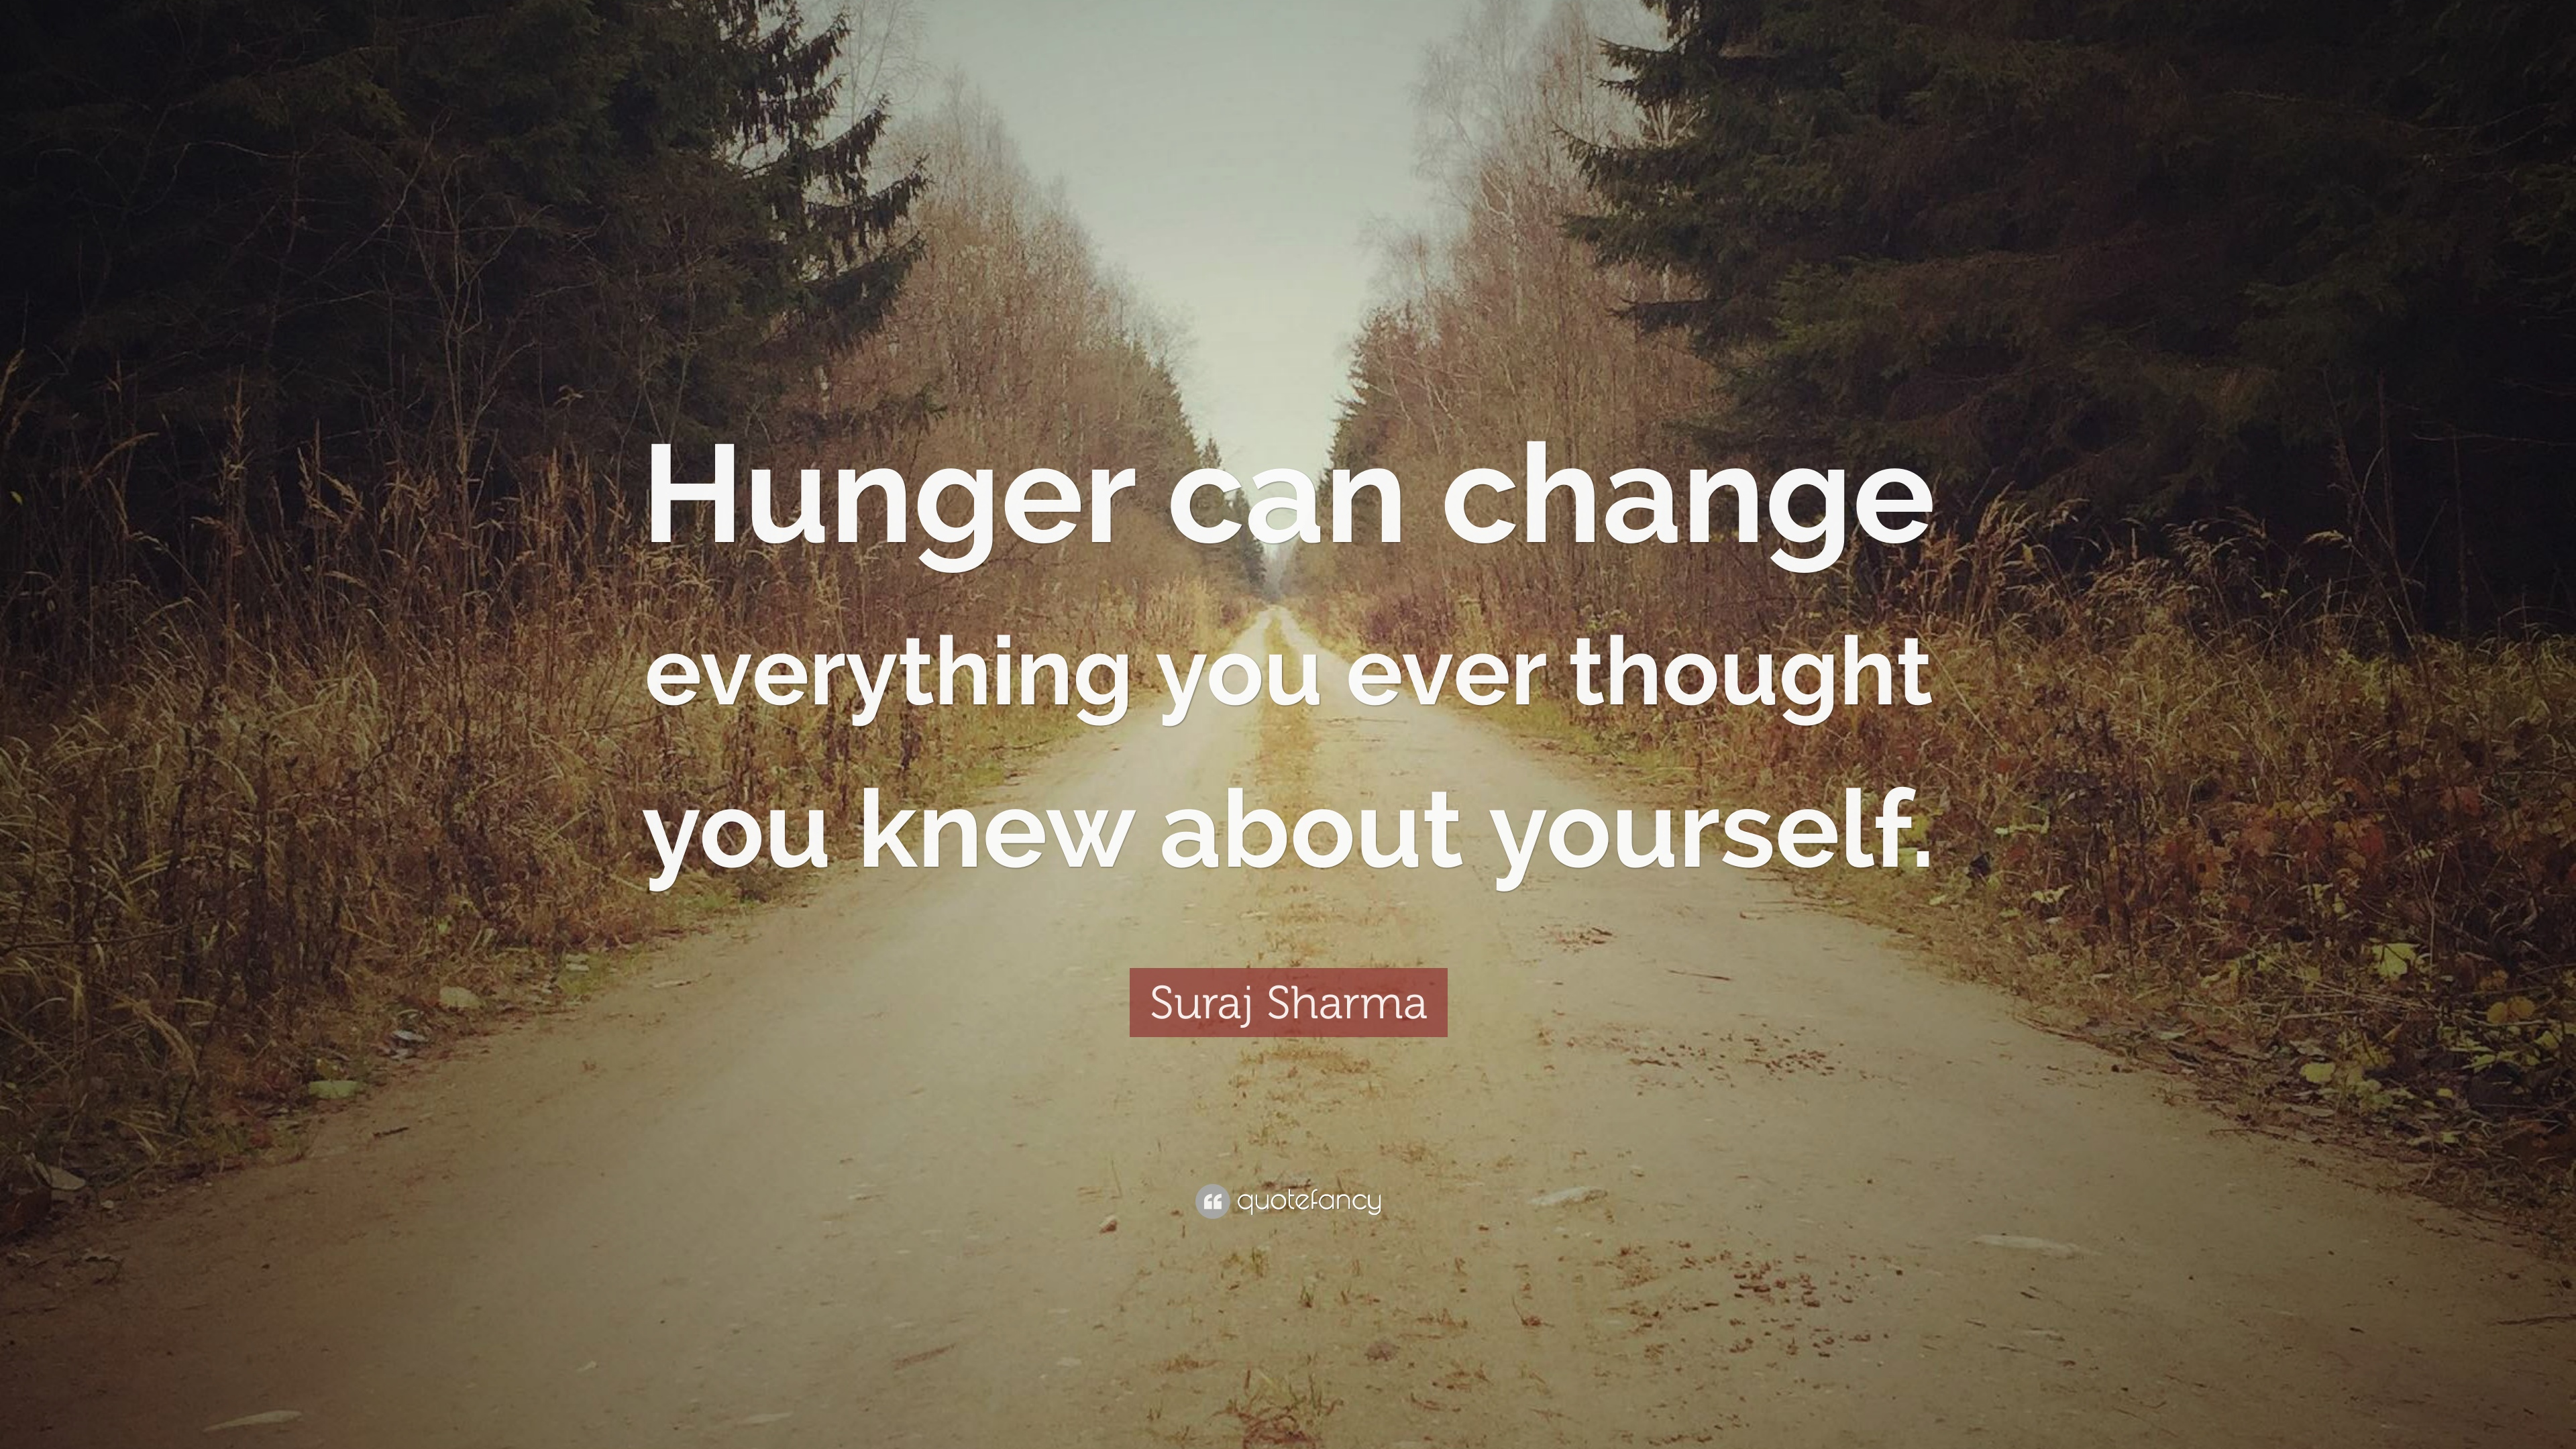 Quotes About Hunger Suraj Sharma Quotes 10 Wallpapers  Quotefancy